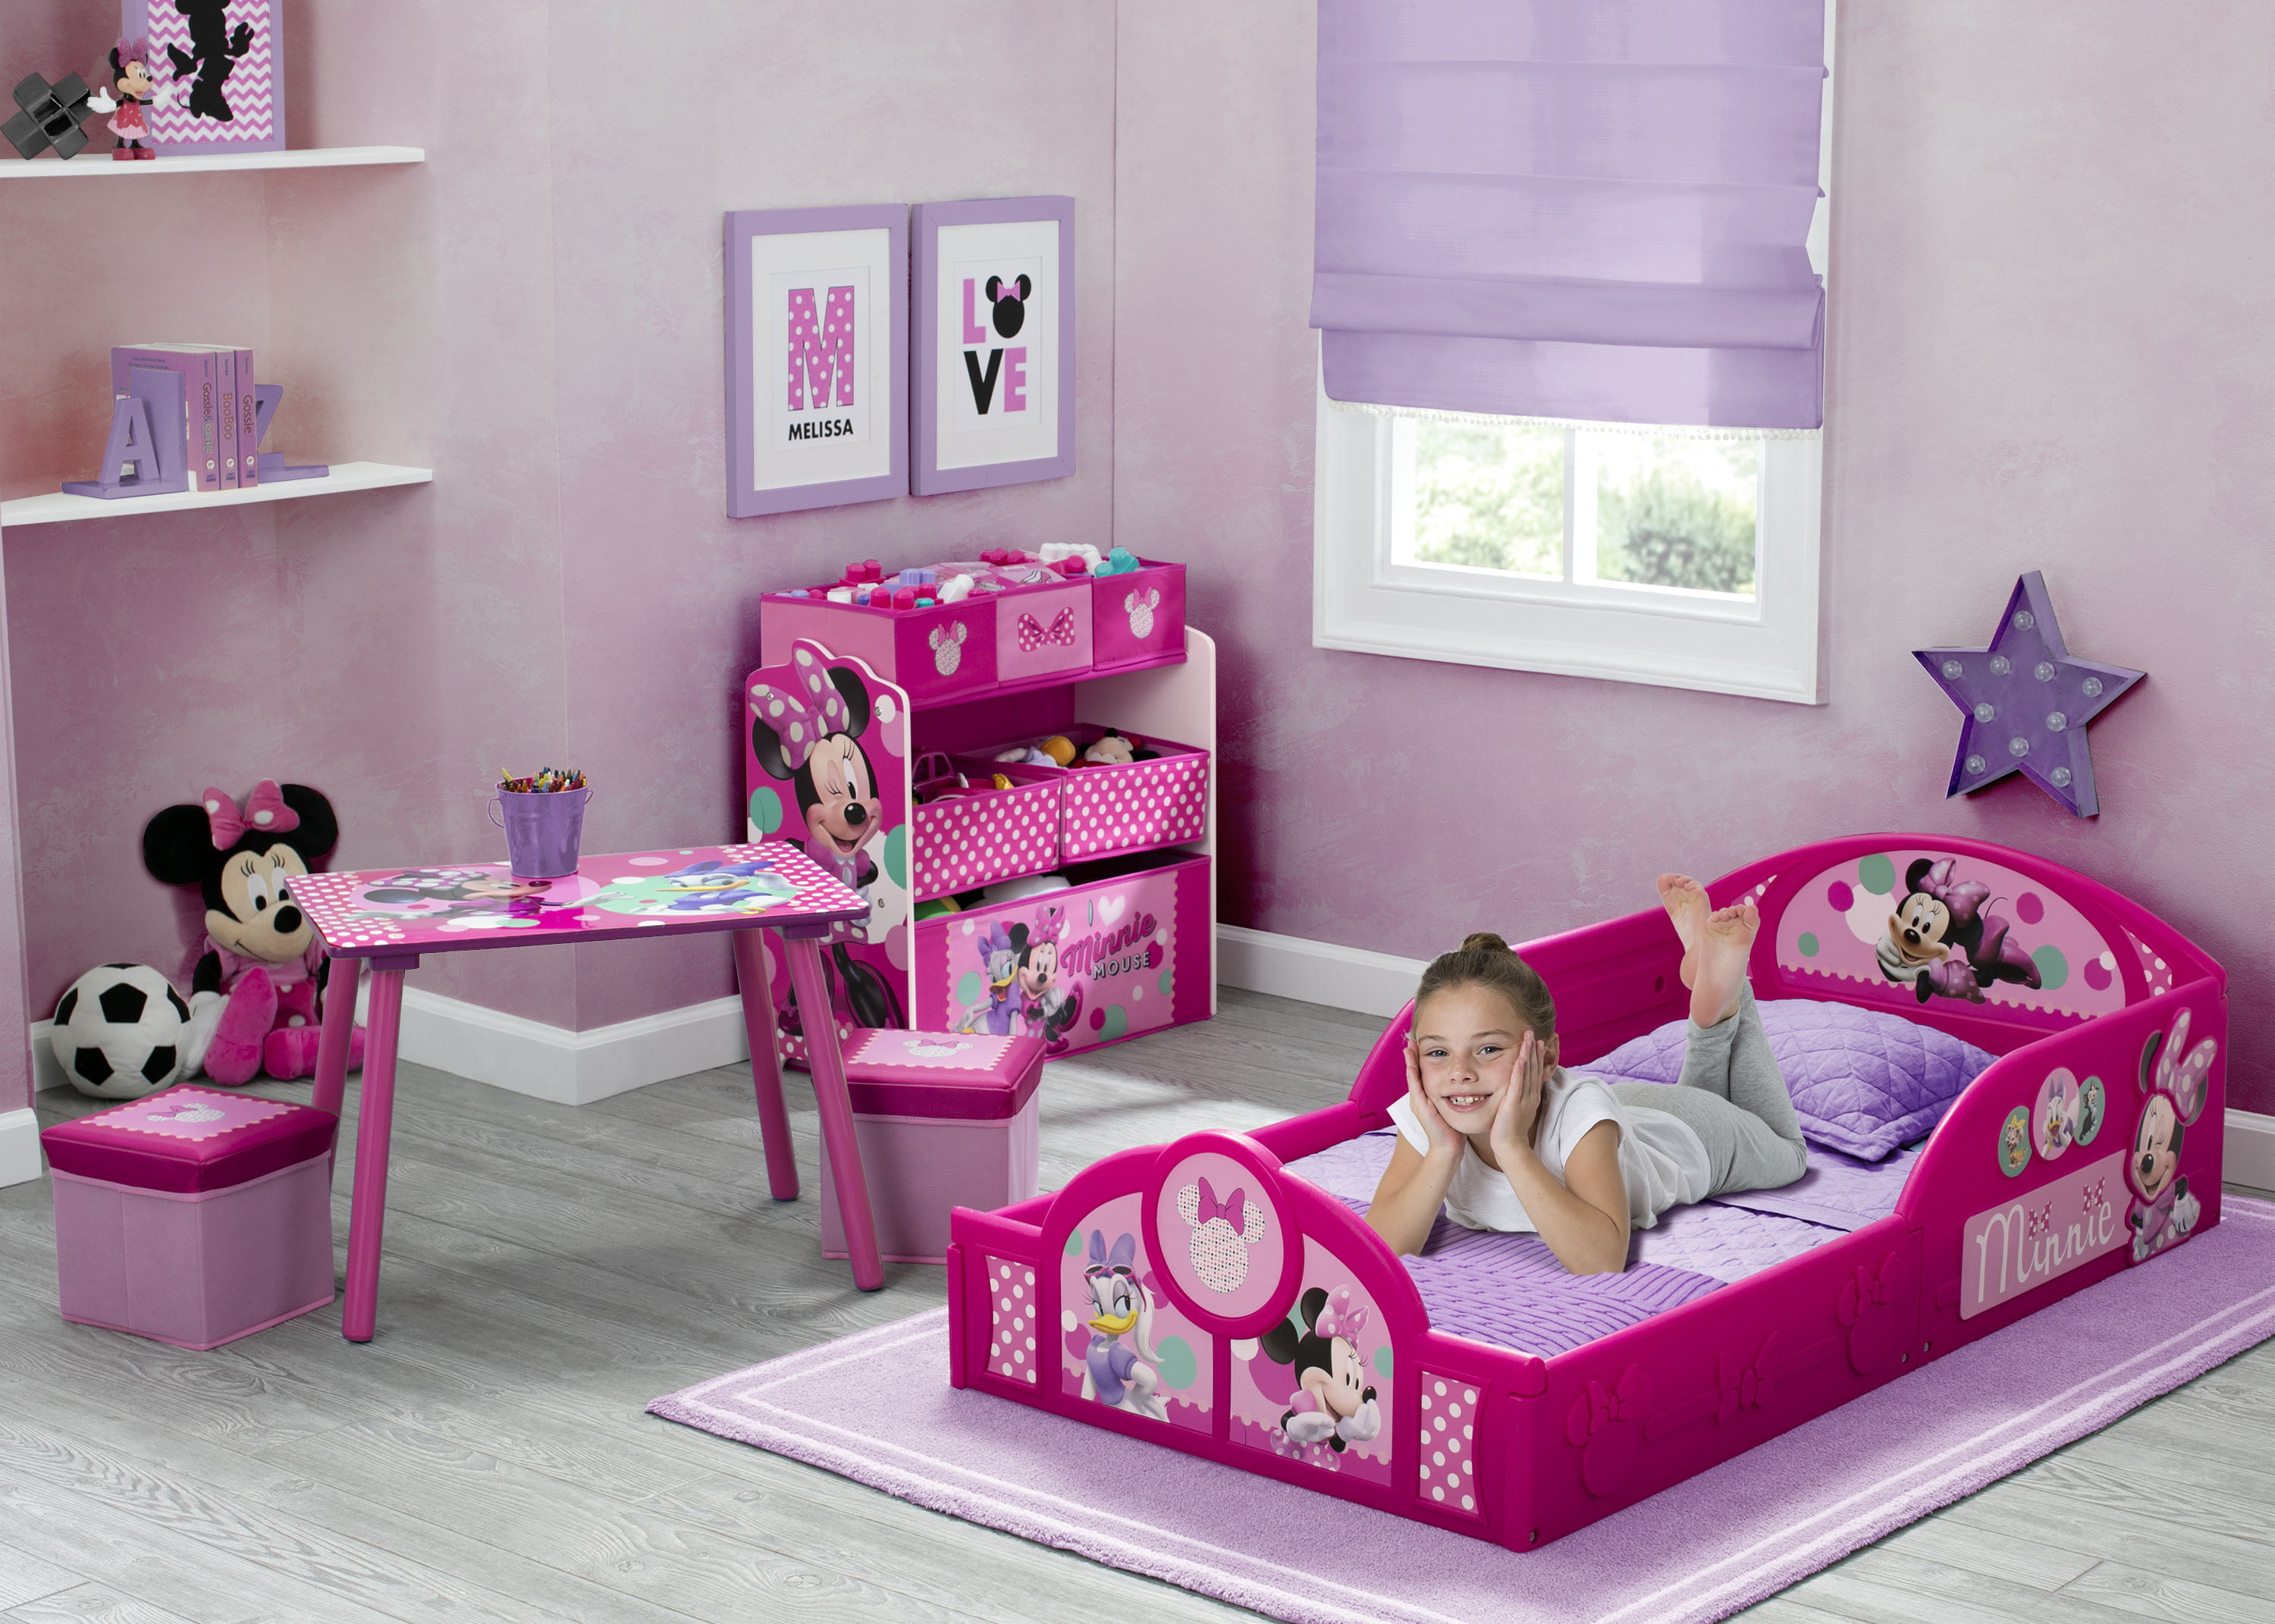 Disney Minnie Mouse 5 Piece Toddler Bedroom Set By Delta Children Includes Toddler Bed Table 2 Ottoman Set Multi Bin Toy Organizer Walmart Com Walmart Com